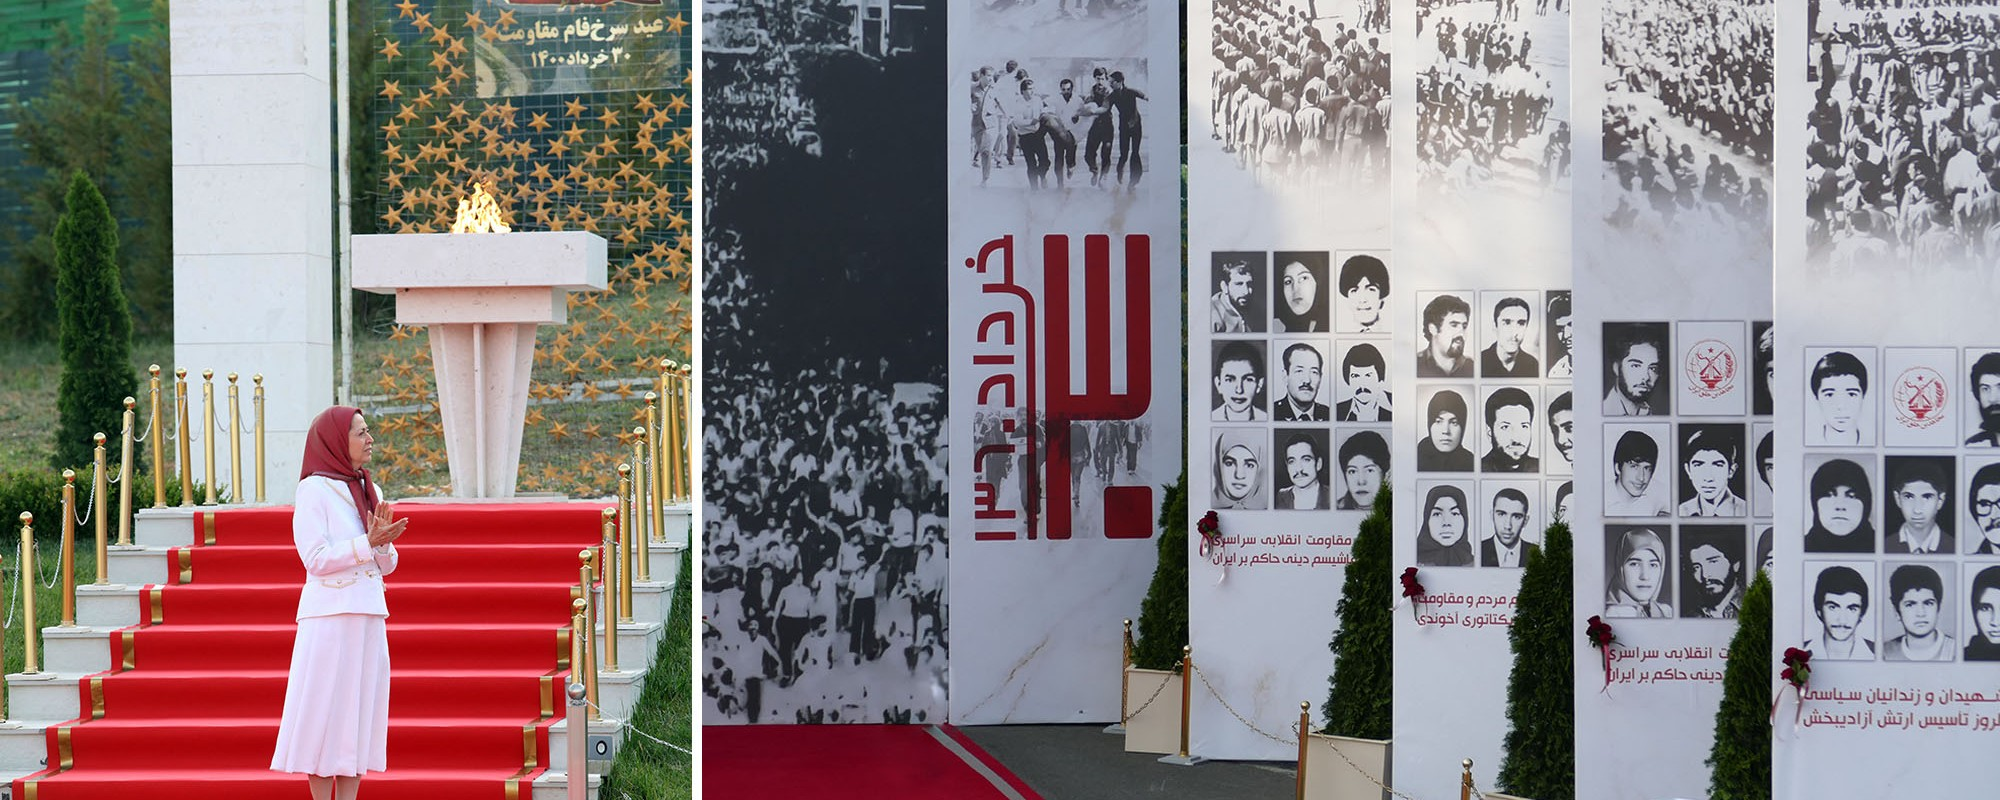 June 20 marks the 40th anniversary of resistance against the Iranian regime- The historical red line separating freedom and religious tyranny